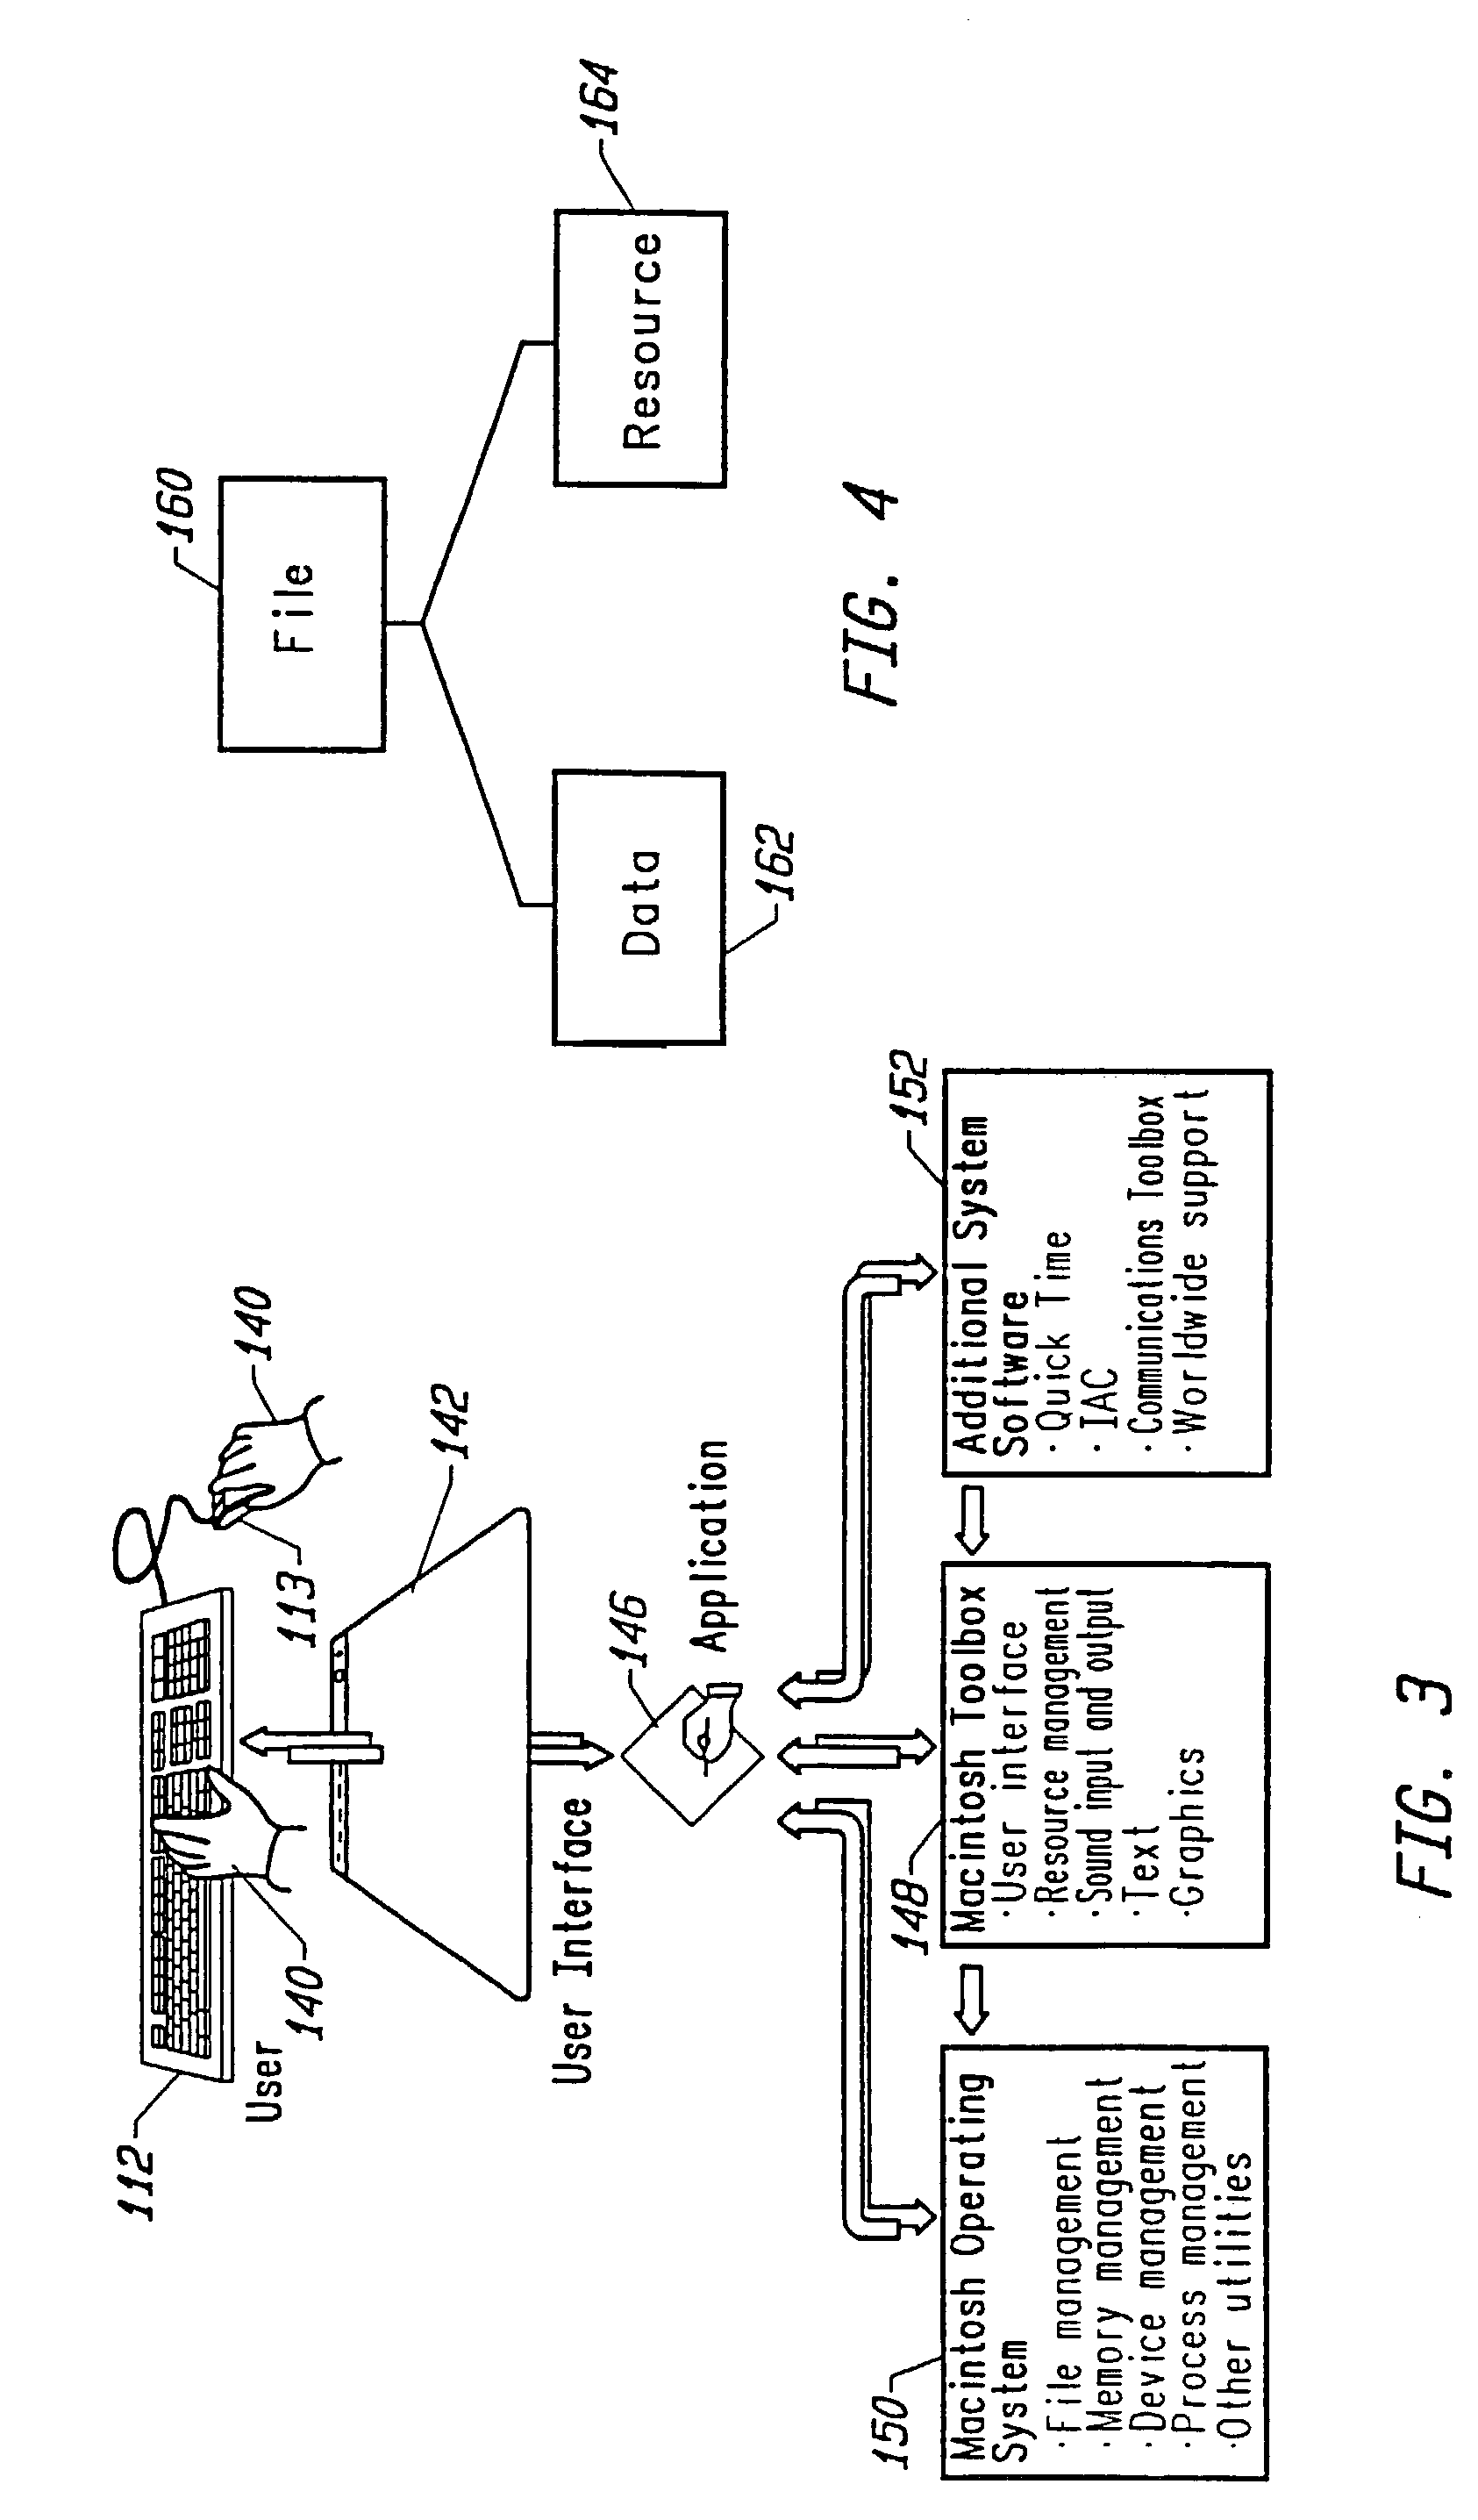 Dialog Box Definition Computer Terms Auto Electrical Wiring Diagram Enclosure Related With